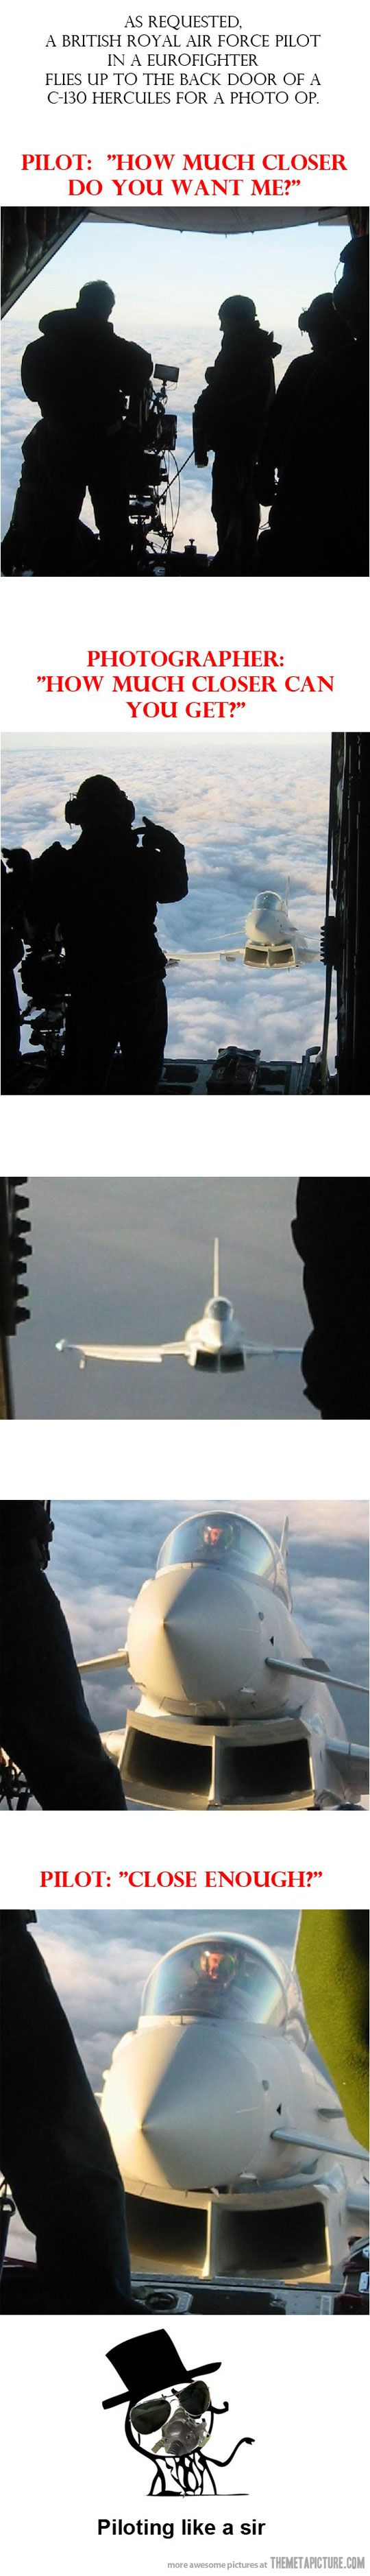 funny-jet-plane-close-up-photo